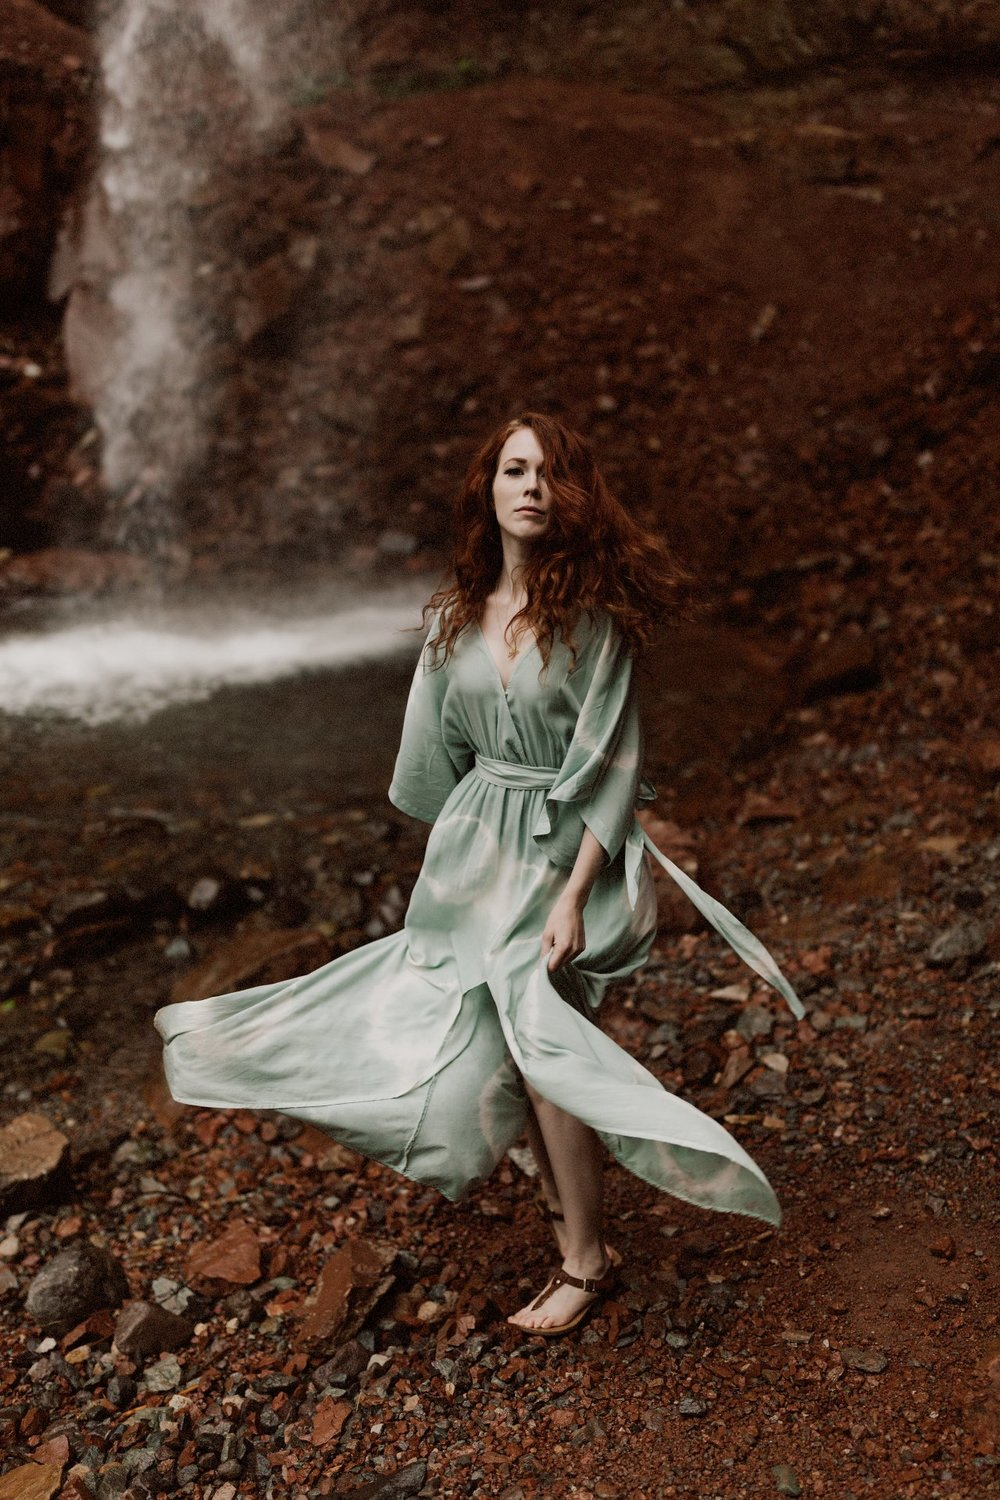 cornet-falls-telluride-adventure-session-19.jpg